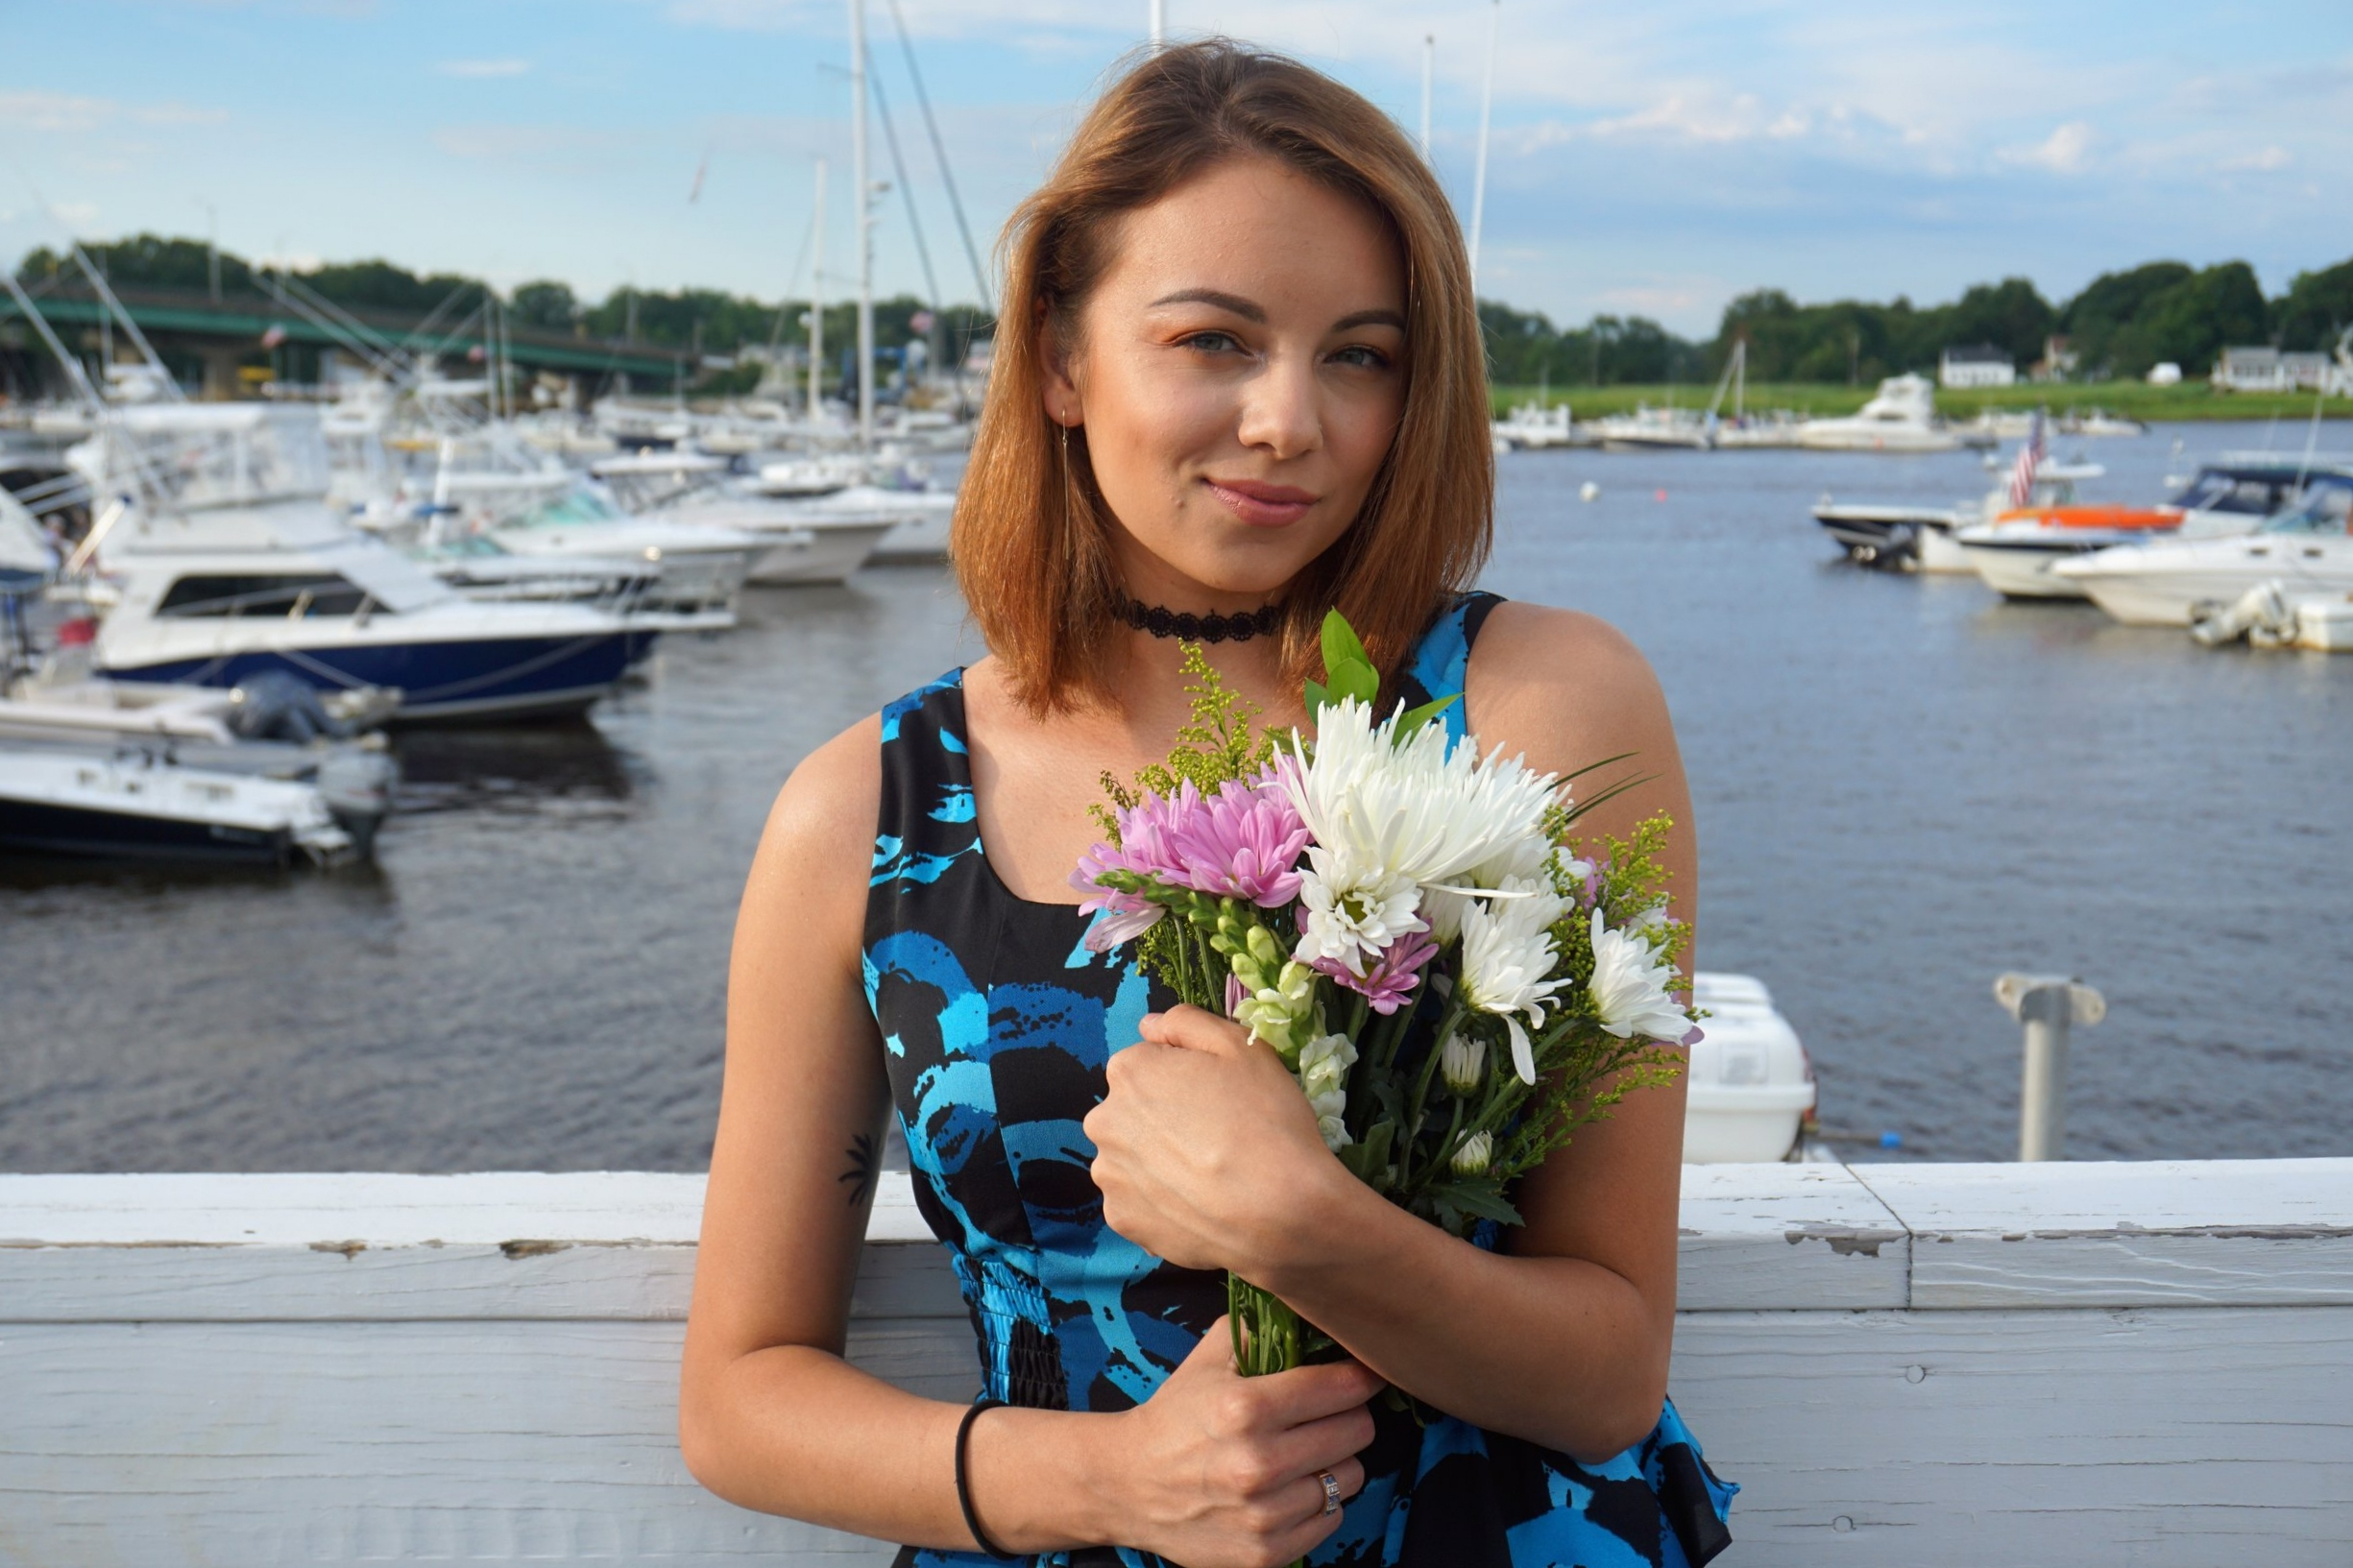 A portrait of a girl holding flowers on the pier.